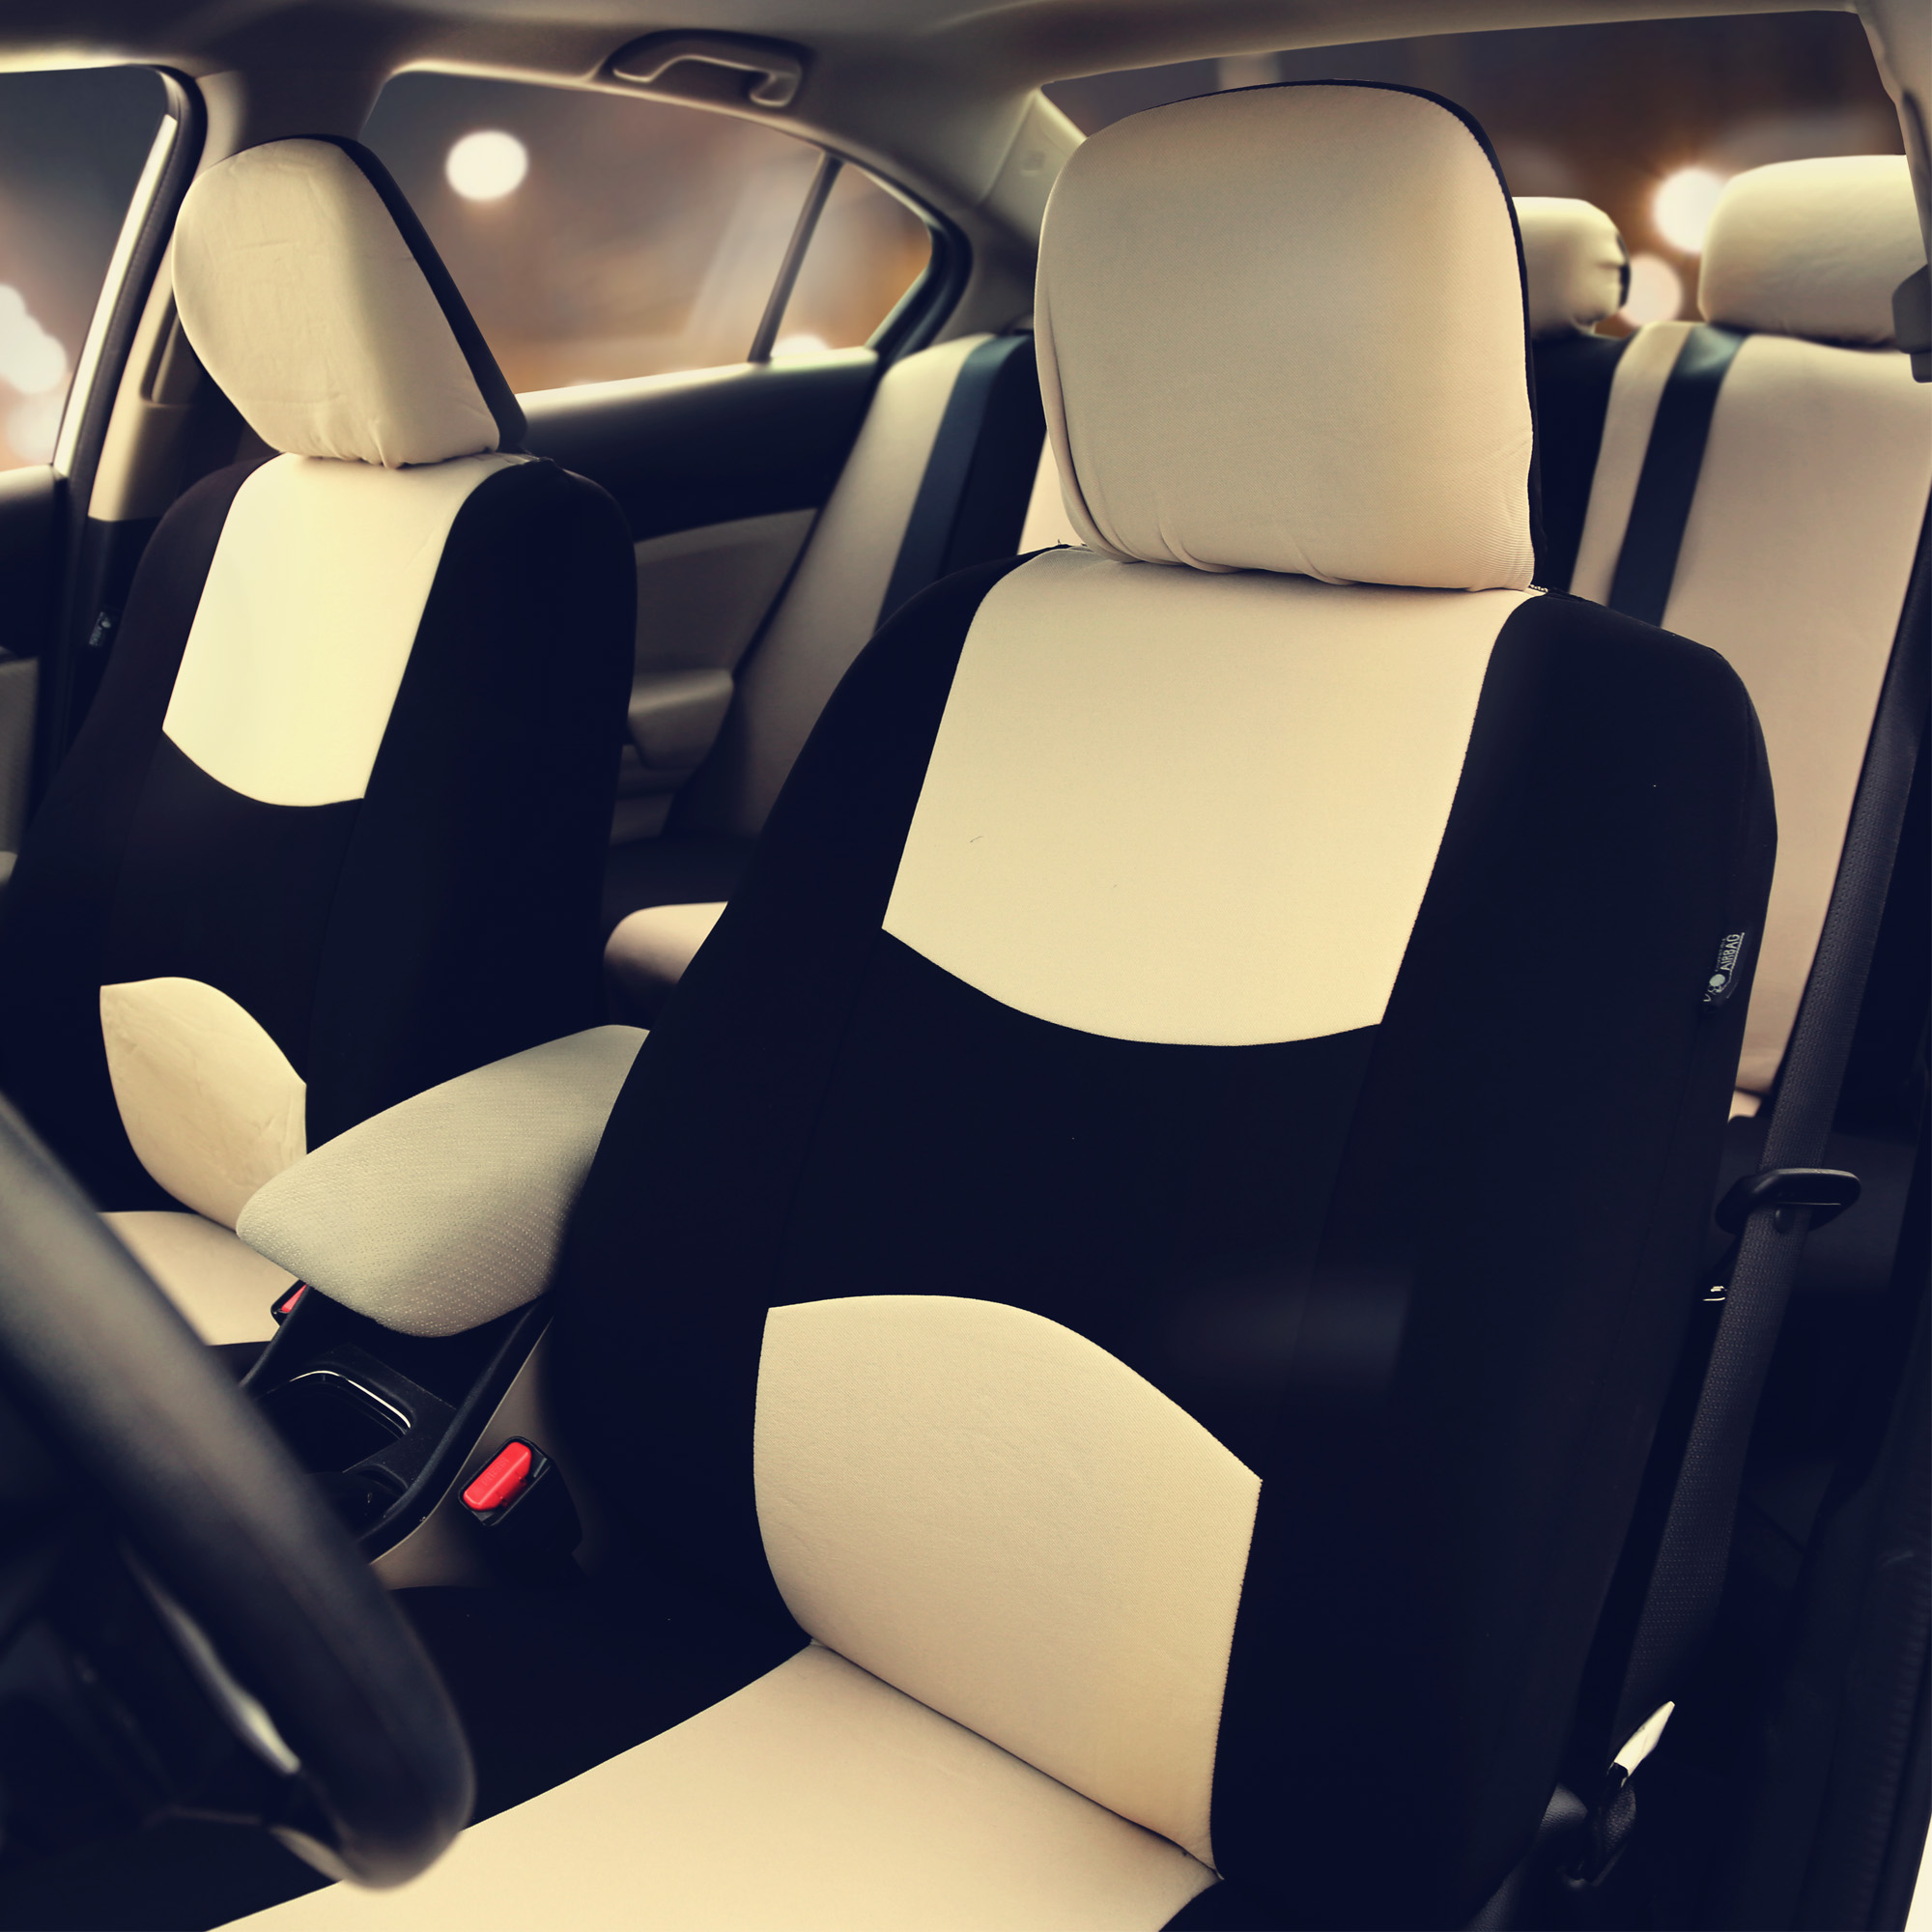 Car Seat Covers Beige Full Set For Auto Suv Van W 5headrests